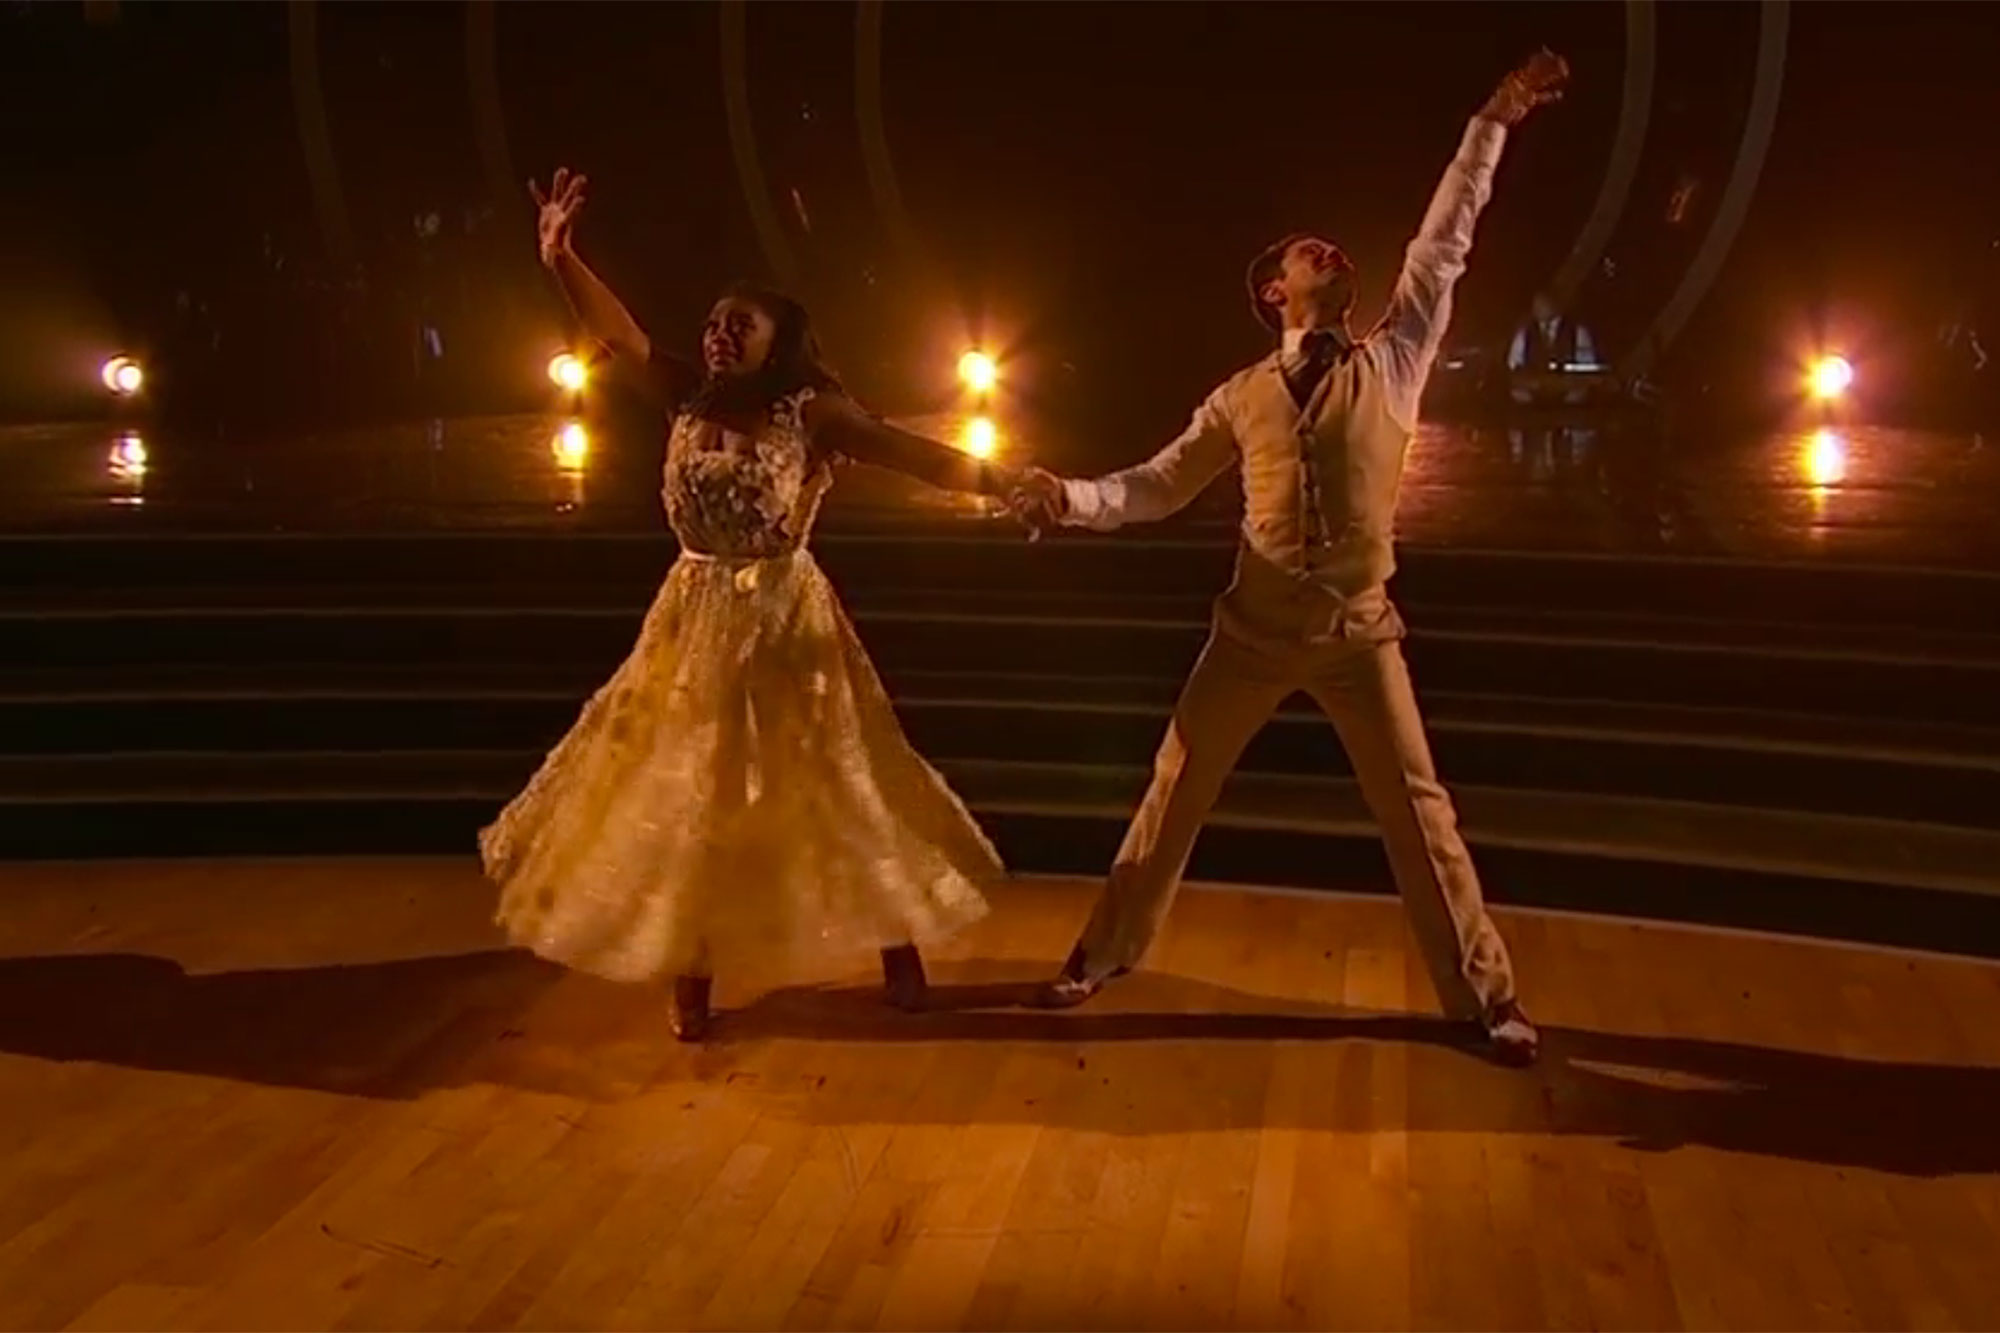 Simone Biles DWTSCredit: ABC